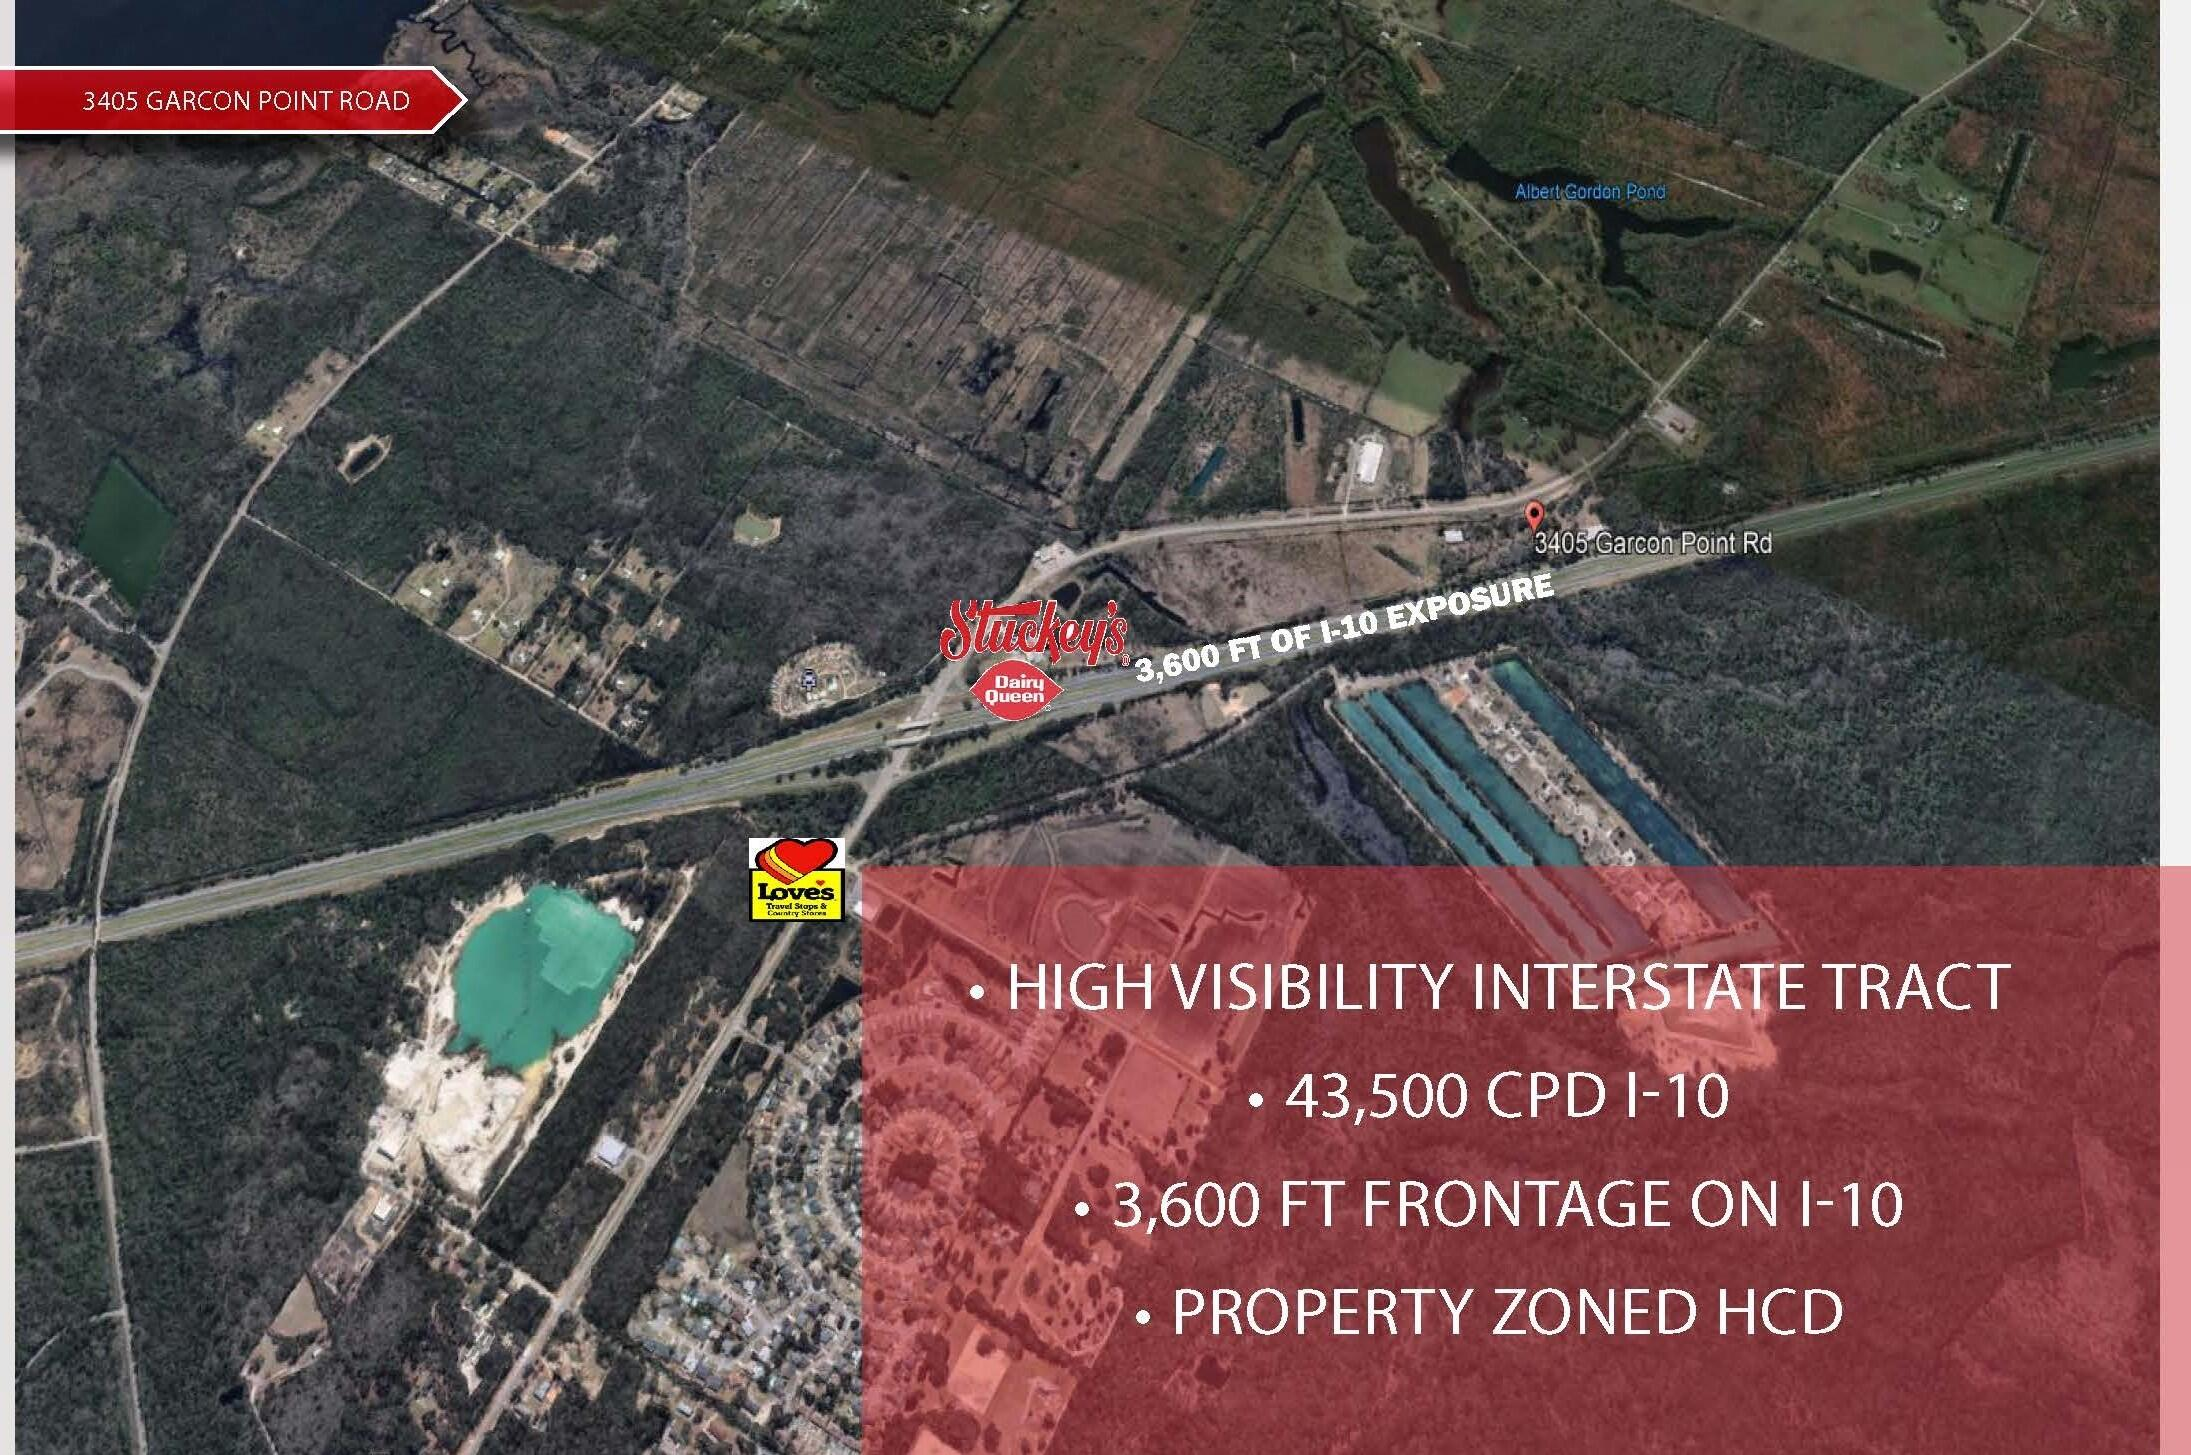 This is a prime tract on Garcon Point Road and I-10 (Exit 26). The property offers quick access to the City of Milton, FL, and Pensacola, FL with an incredible 3,600 FT of exposure along I-10. The property is currently in the rezoning process to HCD with an estimated completion of November 2021.   The Northern Boundary of the property adjoins Stuckeys at the Garcon Point Road / Baghdad Exit. A 12,000 SF Loves Travel Stop is under construction on the Northeast quadrant of this exit (opening Summer 2021)  Once Rezoned the property is highly suitable for a Mixed Use Commercial Center, Hospitality, RV Park, and Industrial User.   The owner will consider subdividing.